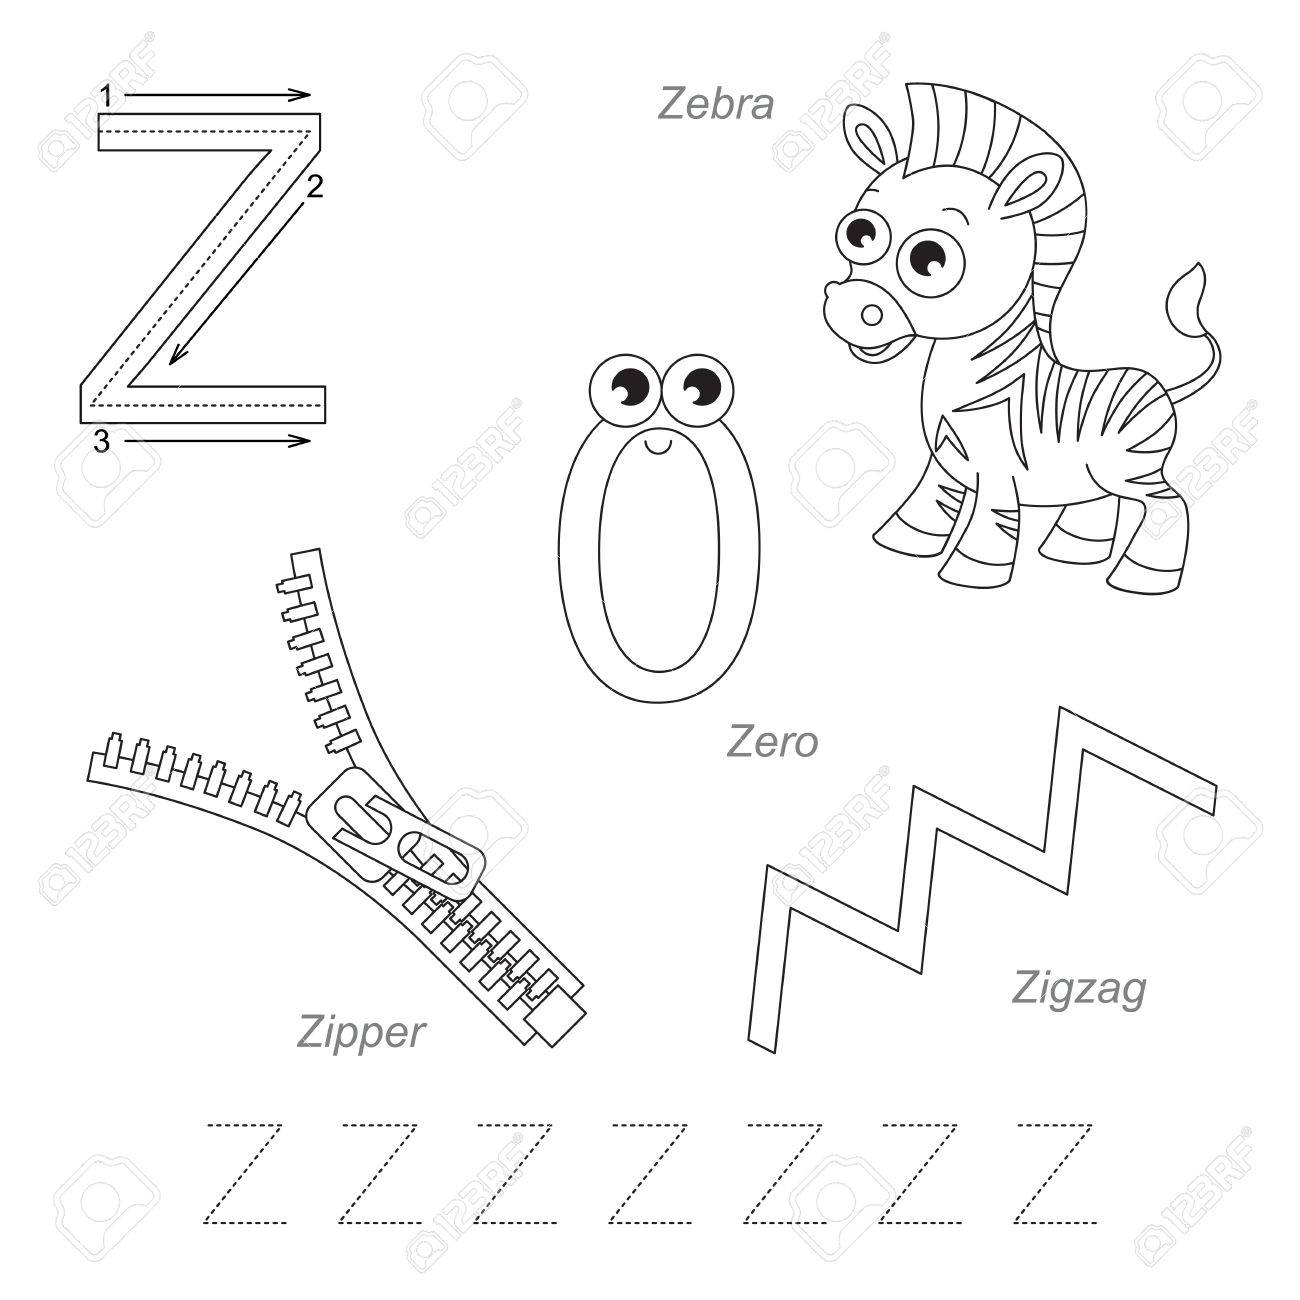 Tracing Worksheet For Children. Full English Alphabet From A.. intended for Letter Z Tracing Worksheets